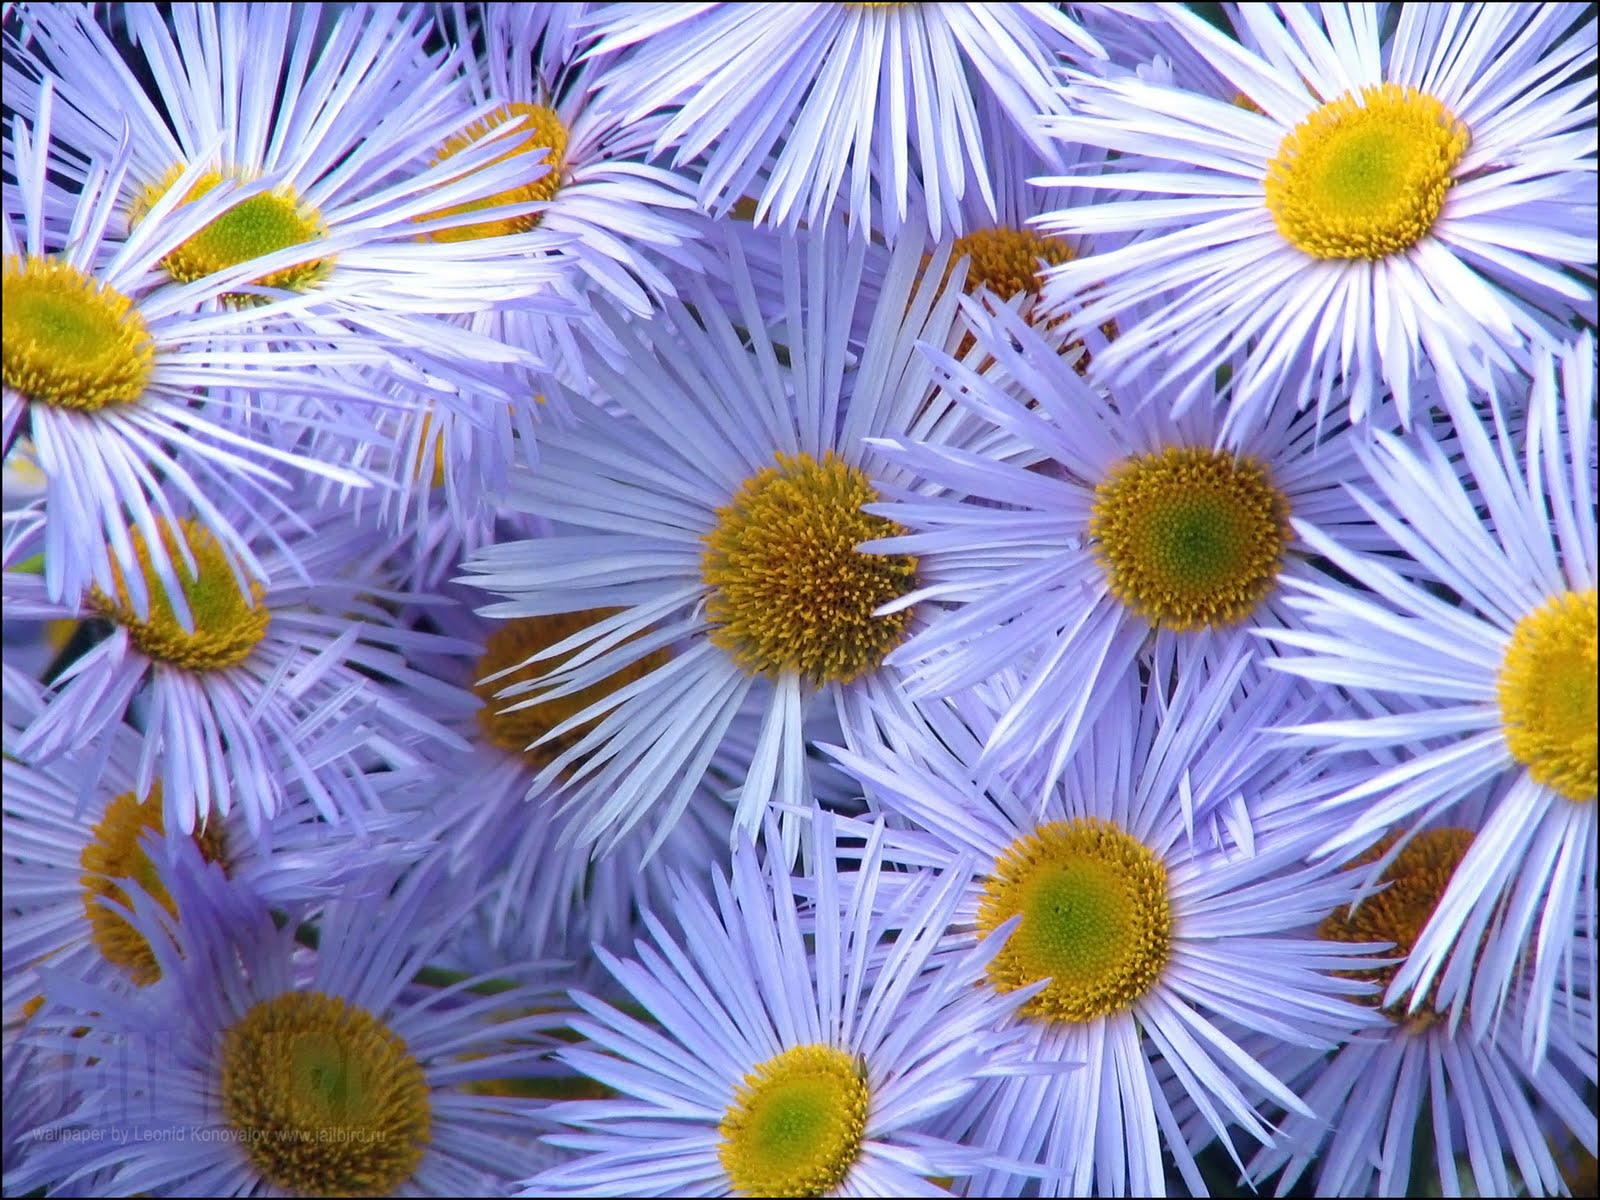 Desktop Wallpaper Desktop Wallpaper Flowers 1600x1200